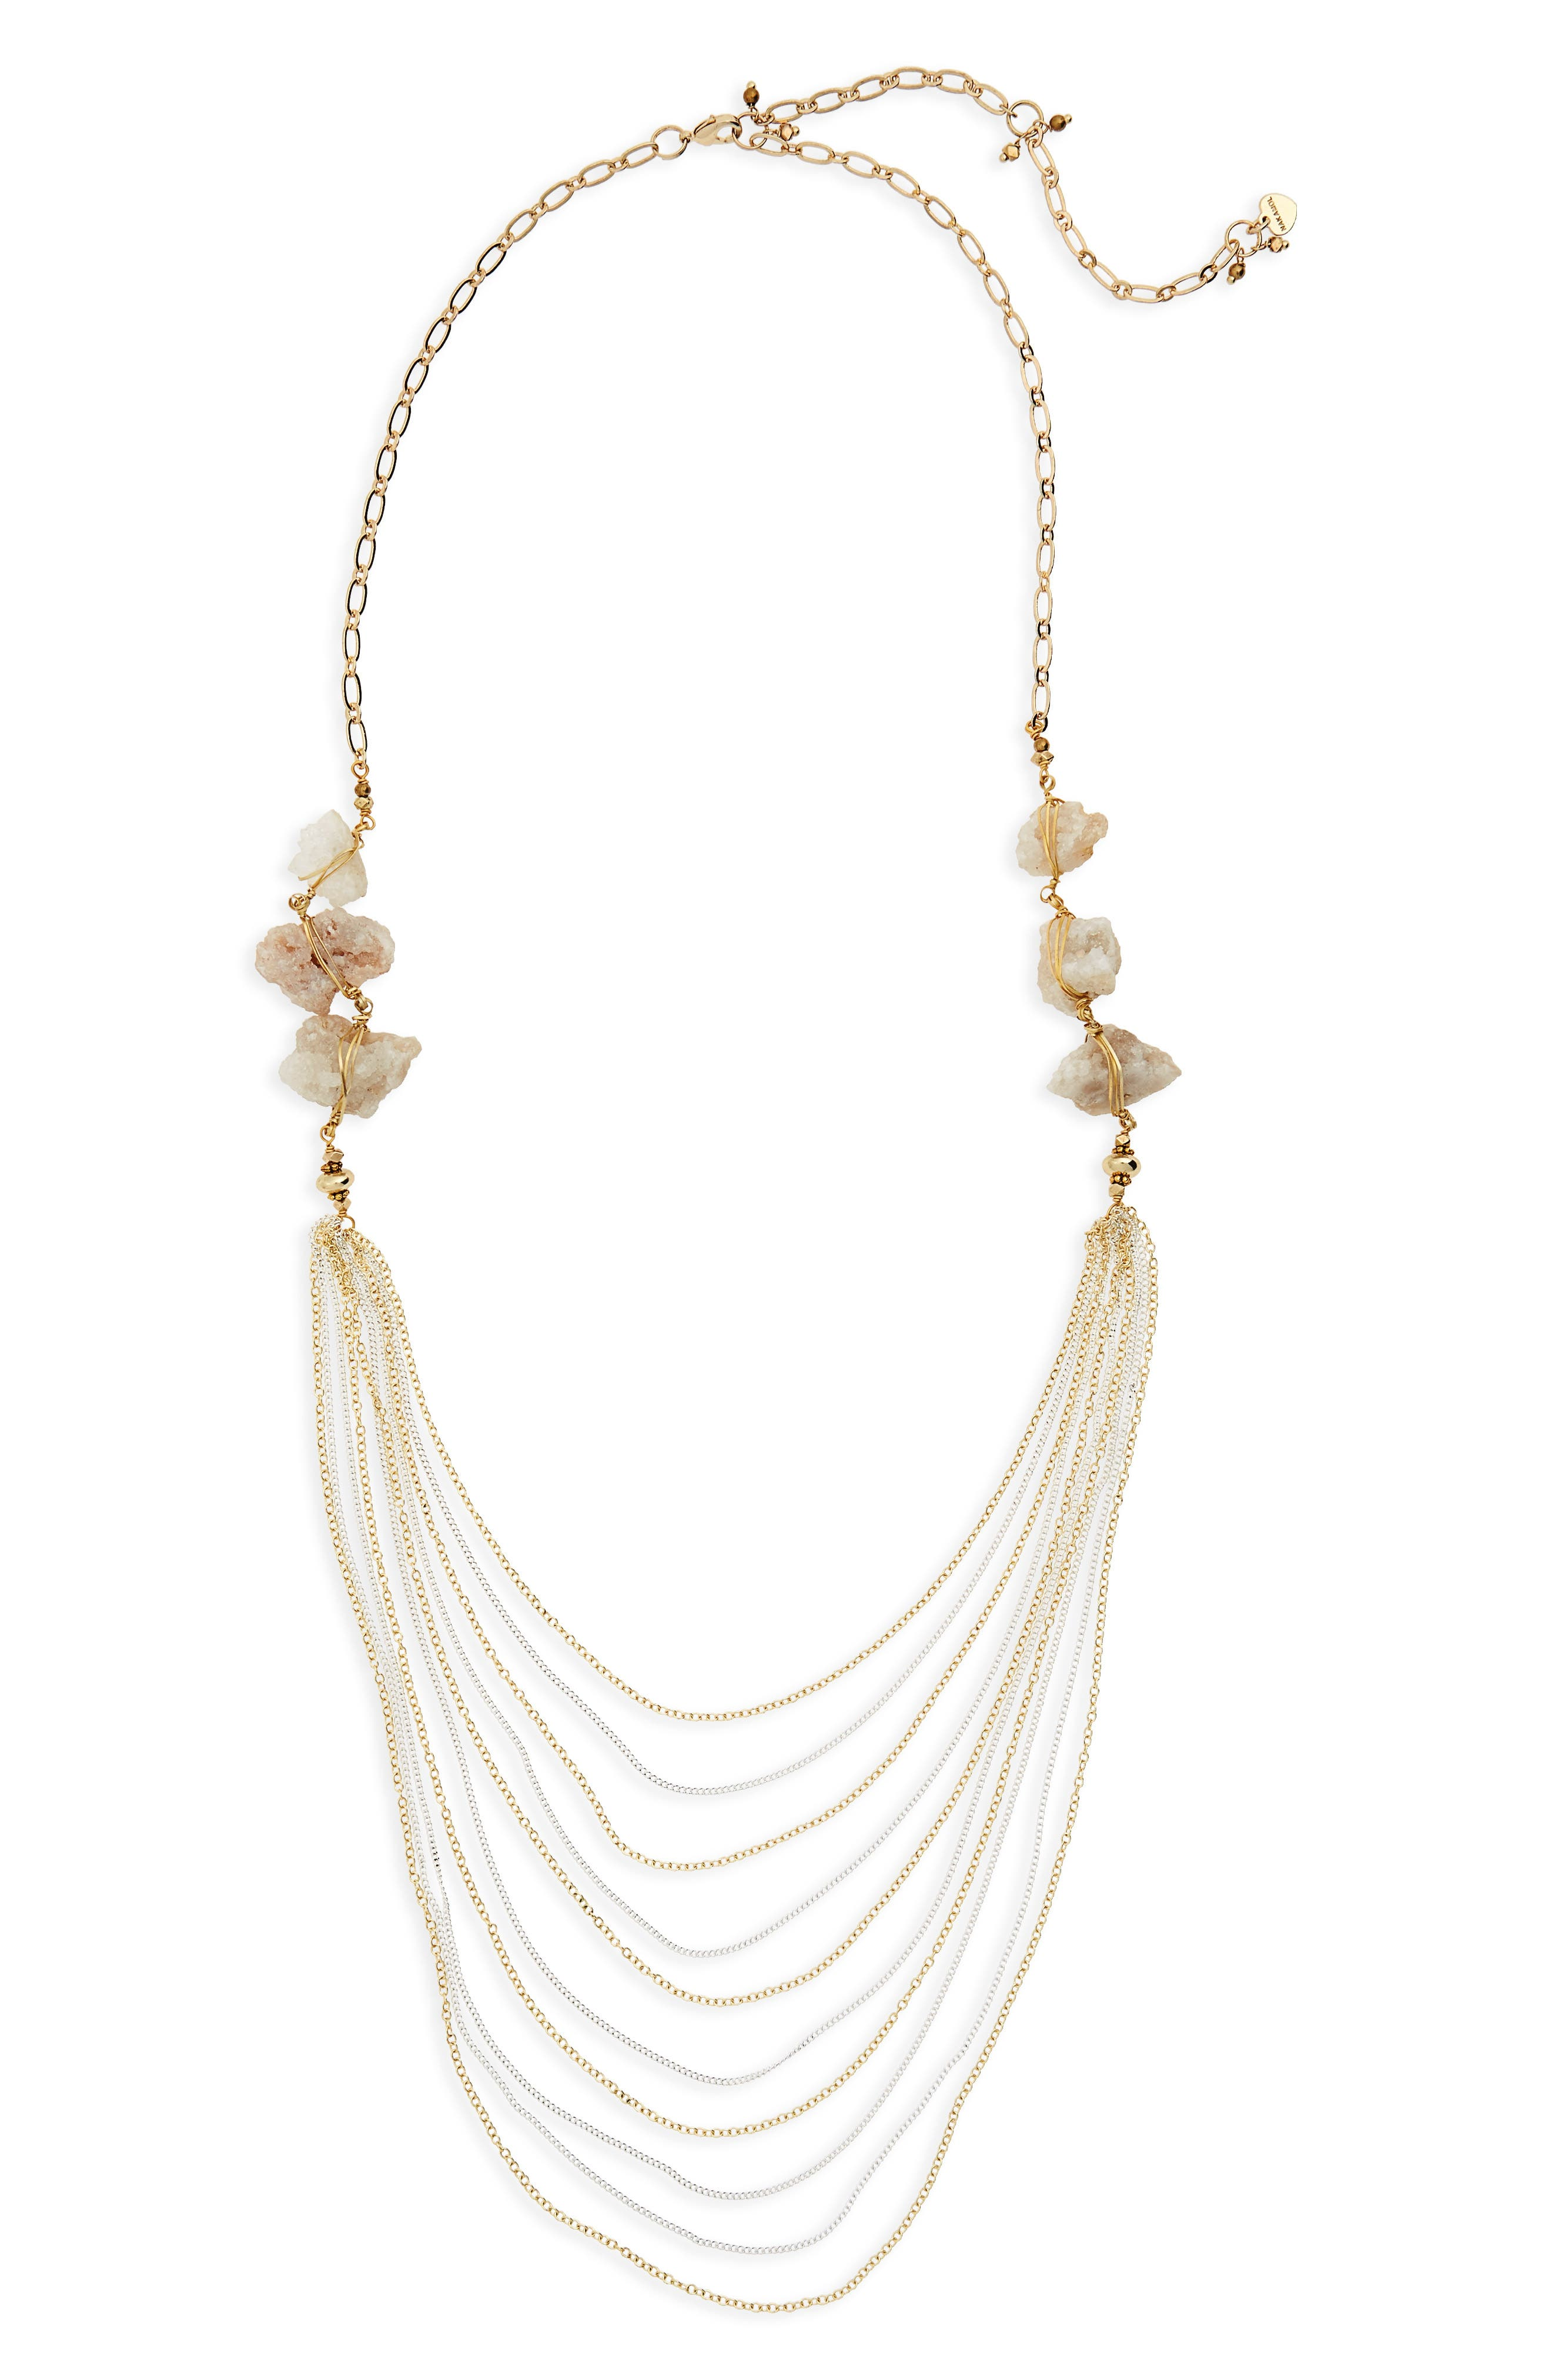 Agate Layered Chain Necklace,                             Main thumbnail 1, color,                             Light Grey